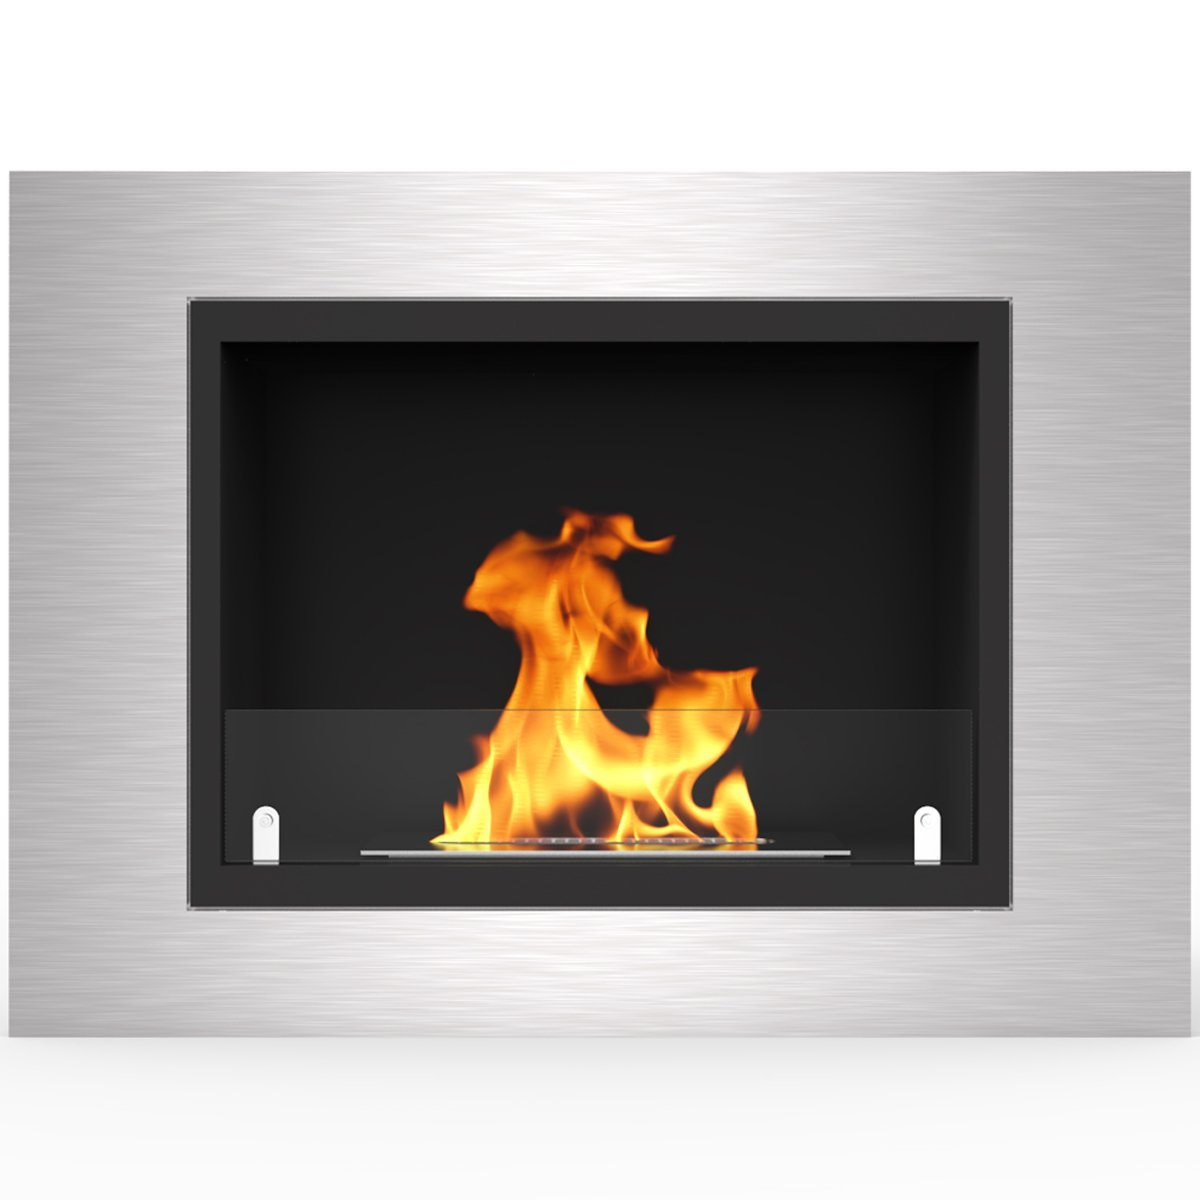 Regal Flame Venice 32'' Ventless Built In Wall Recessed Bio Ethanol Wall Mounted Fireplace Better than Electric Fireplaces, Gas Logs, Fireplace Inserts, Log Sets, Gas Fireplaces, Space Heaters, Propane by Regal Flame